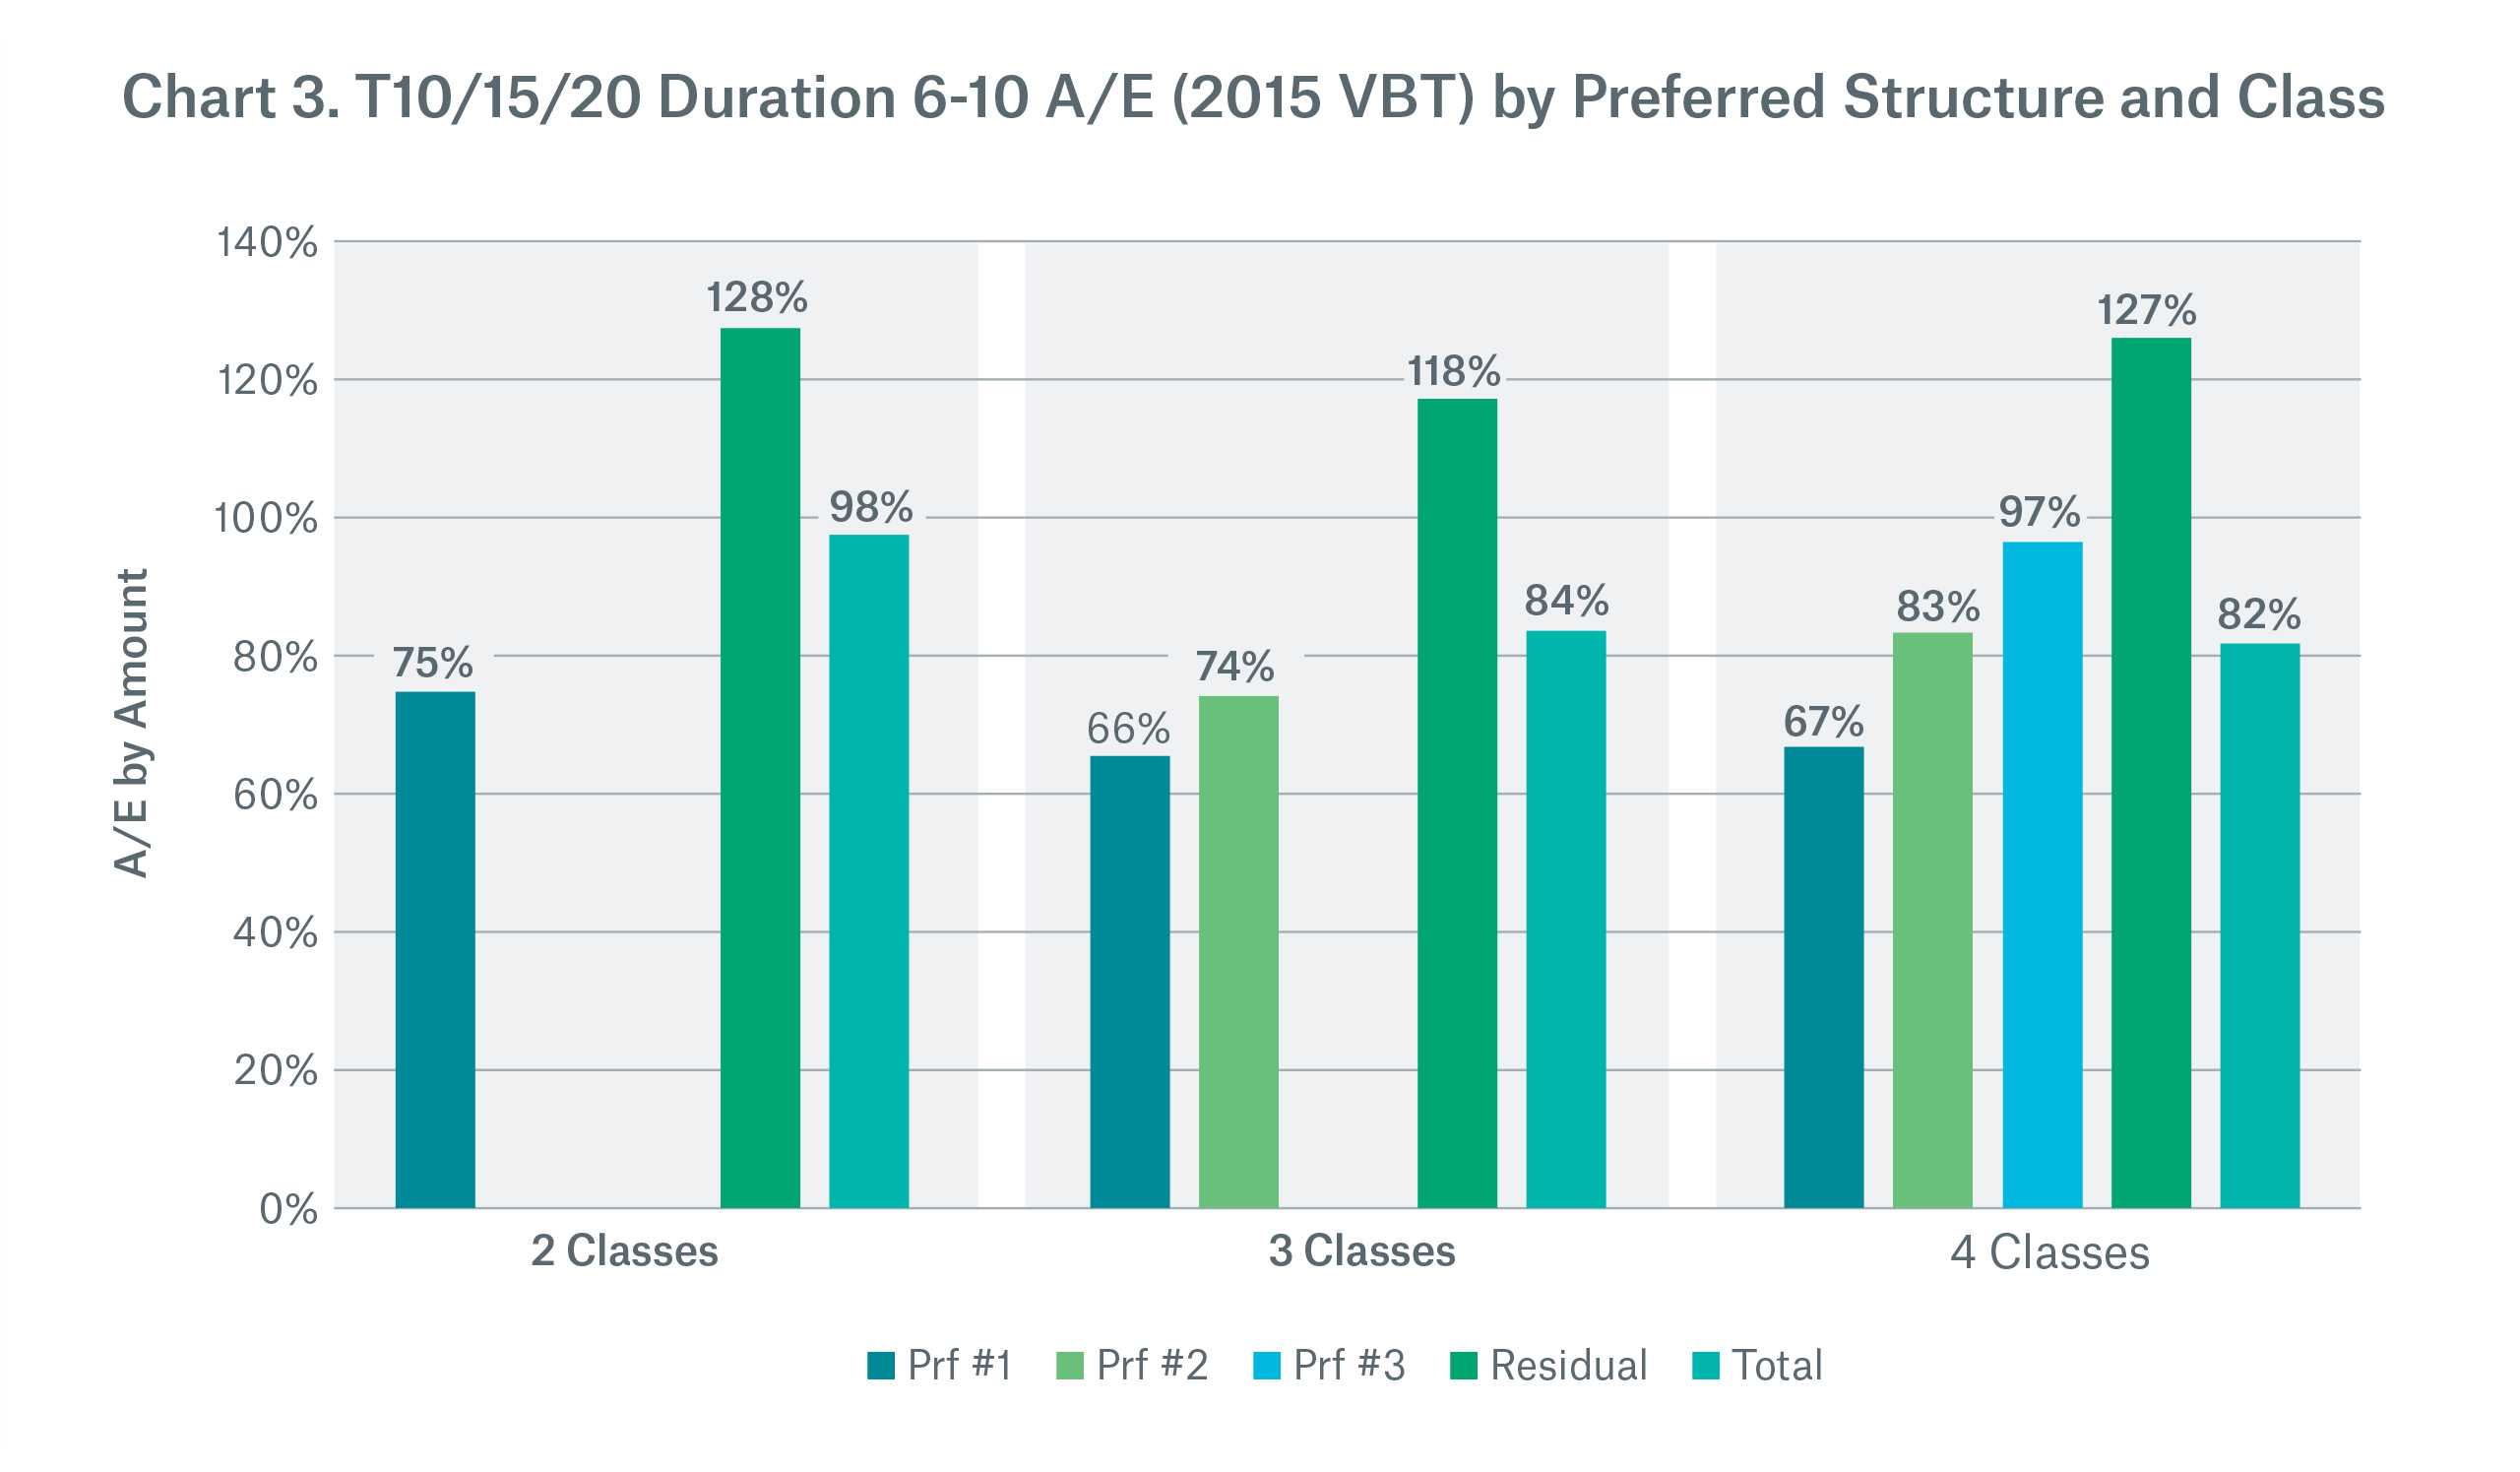 Chart 3. T10/15/20 Duration 6-10 A/E (2015 VBT) by Preferred Structure and Class